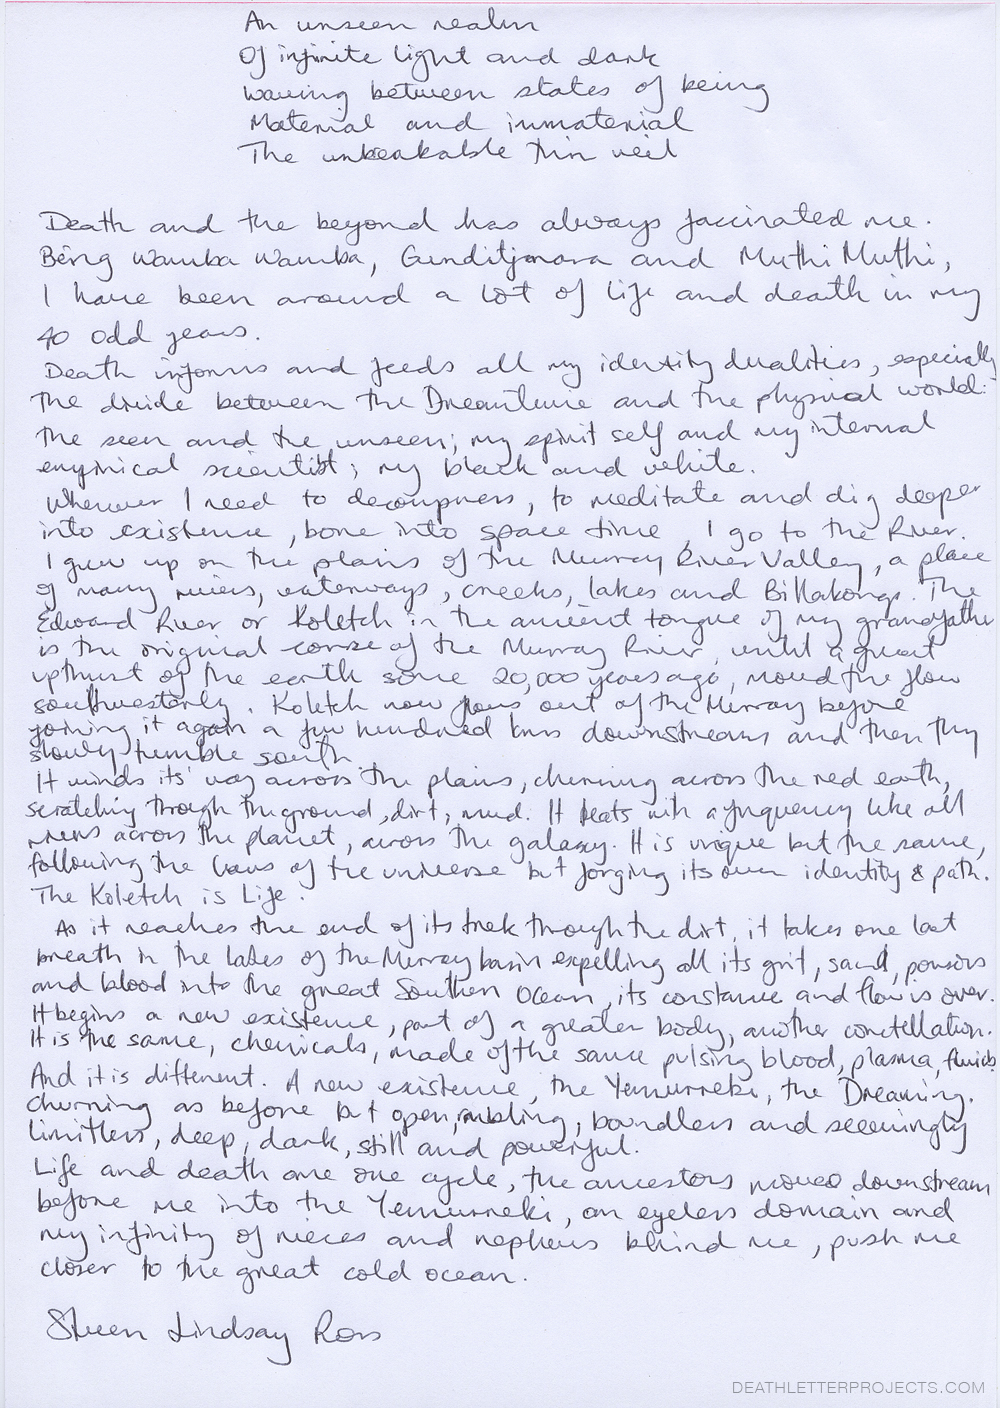 STEVEN-LINDSAY-ROSS_DEATH-LETTER-PROJECTS.COM